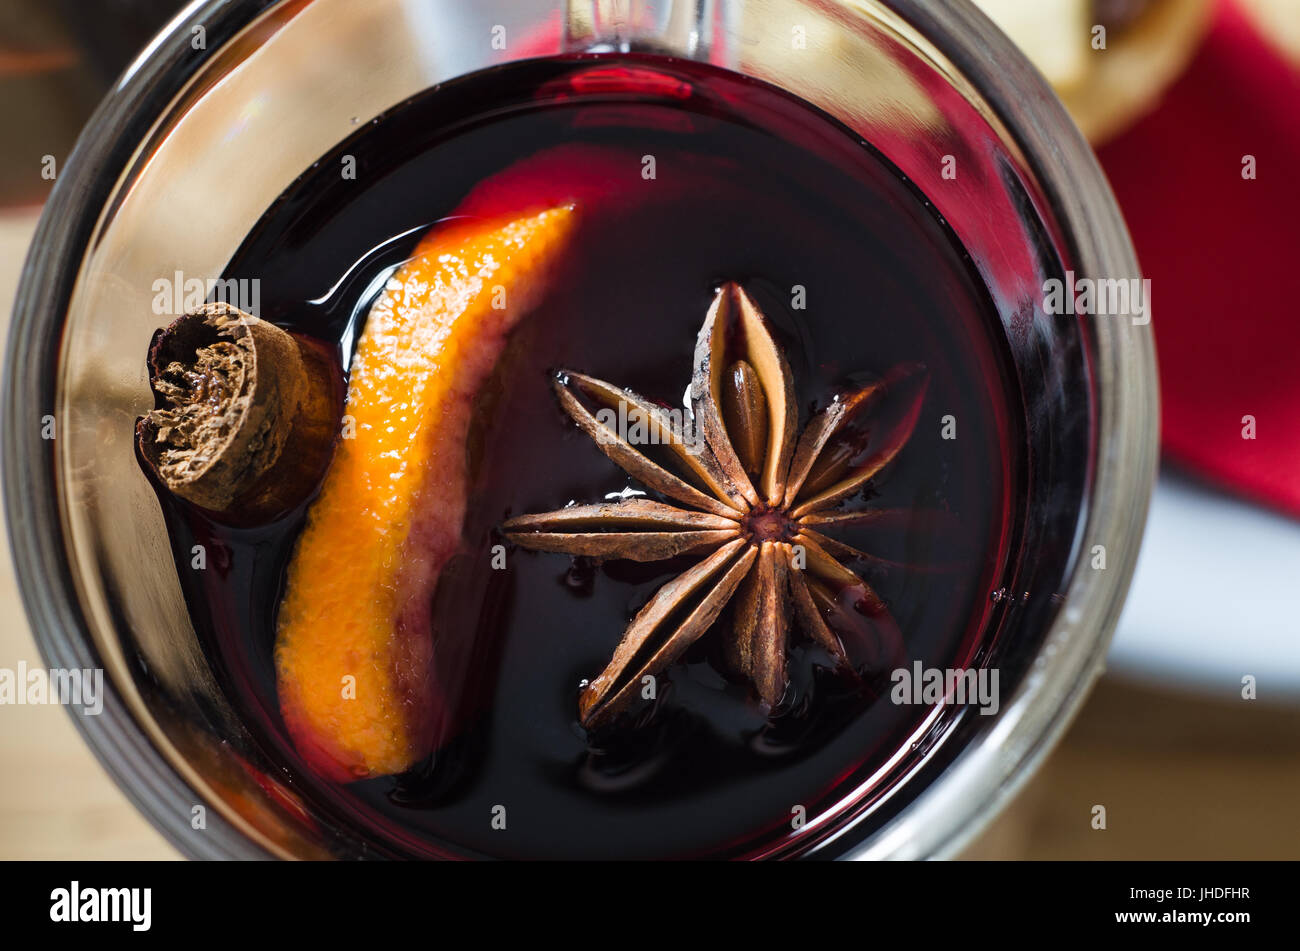 Overhead close up (macro) shot of a glass of mulled wine with star anise, orange and cinnamon stick.  Red napkin - Stock Image